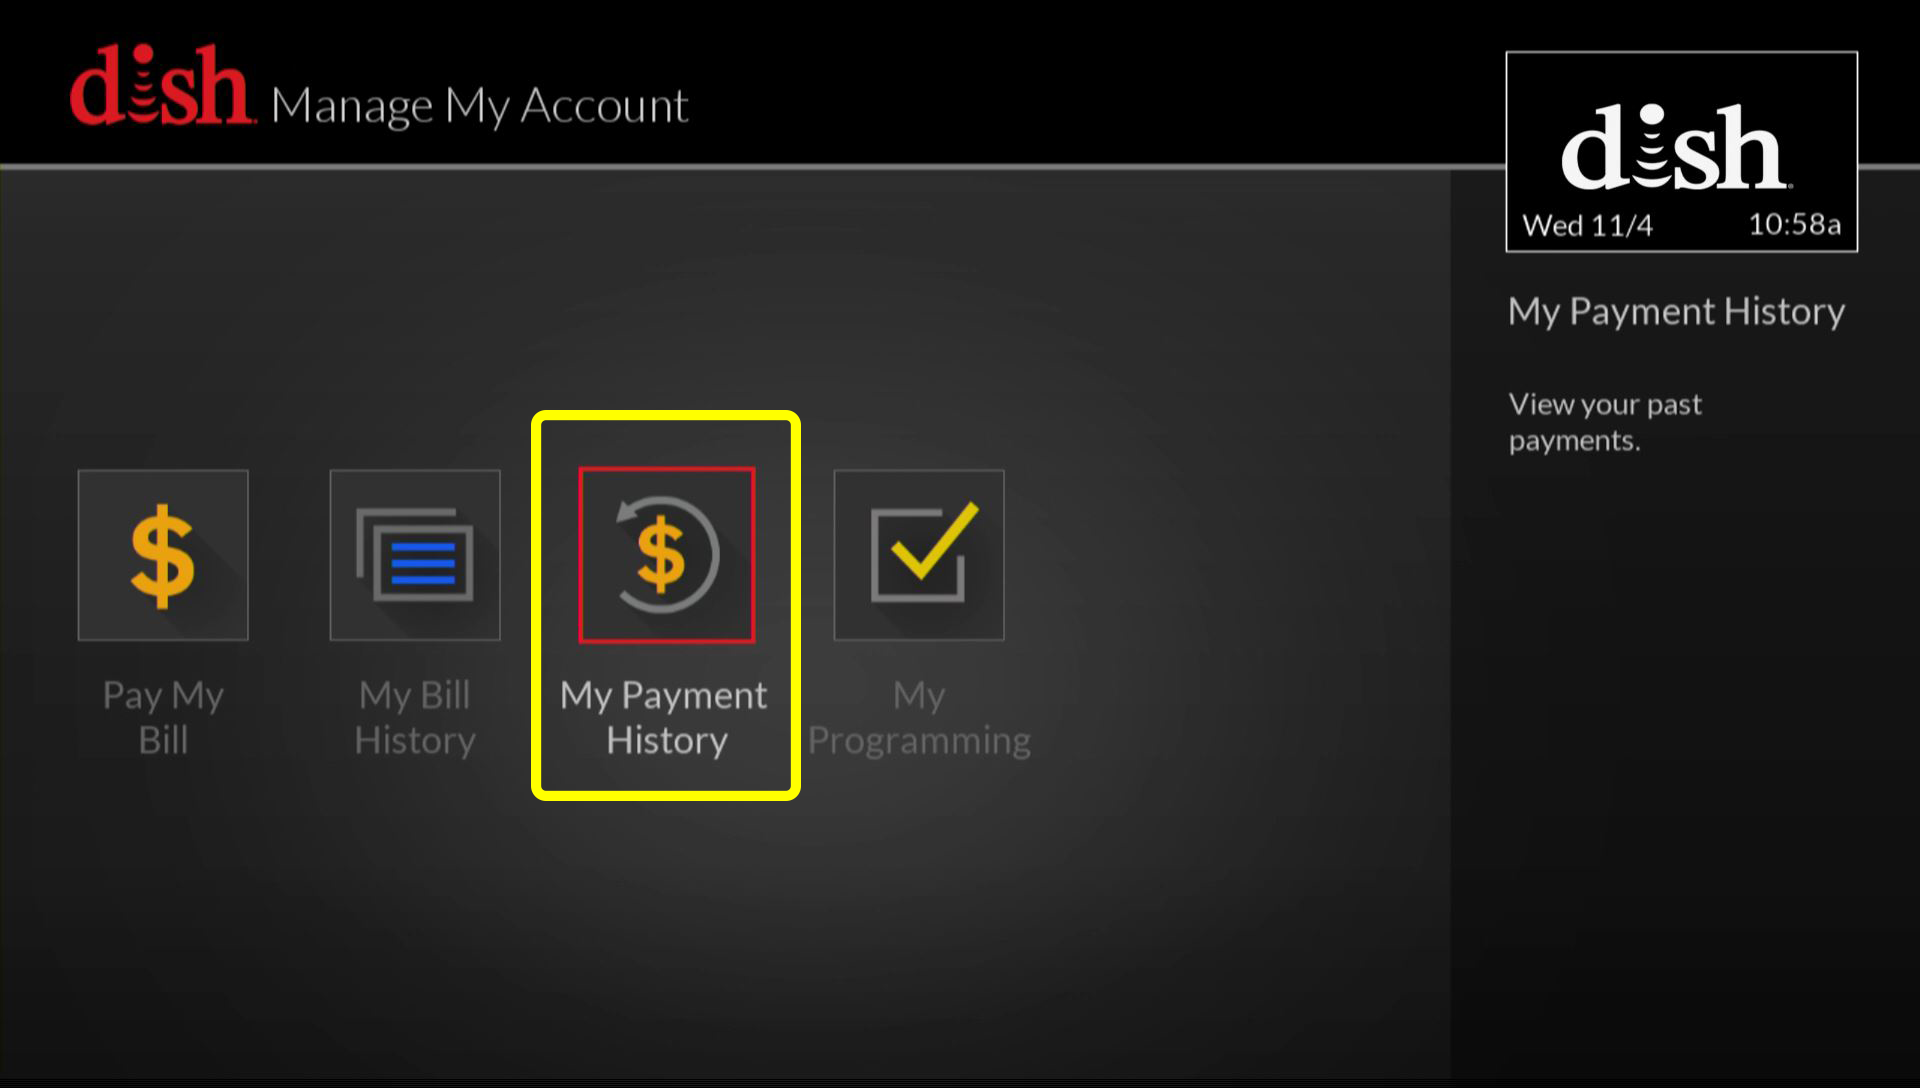 German customer account create/downloader - Select My Payment History